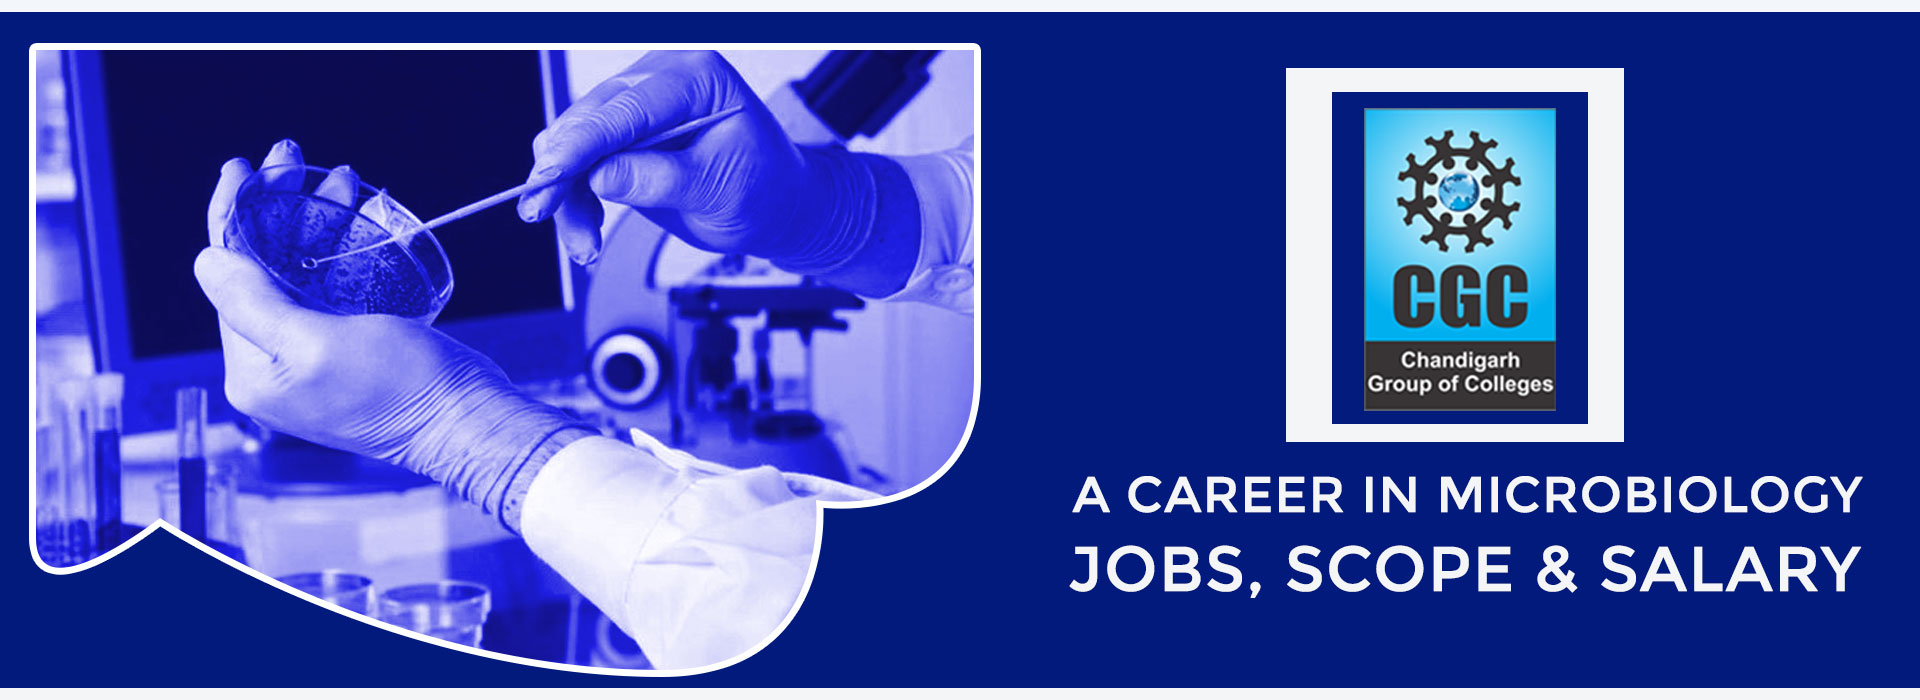 A career in Microbiology: Jobs, Scope & Salary